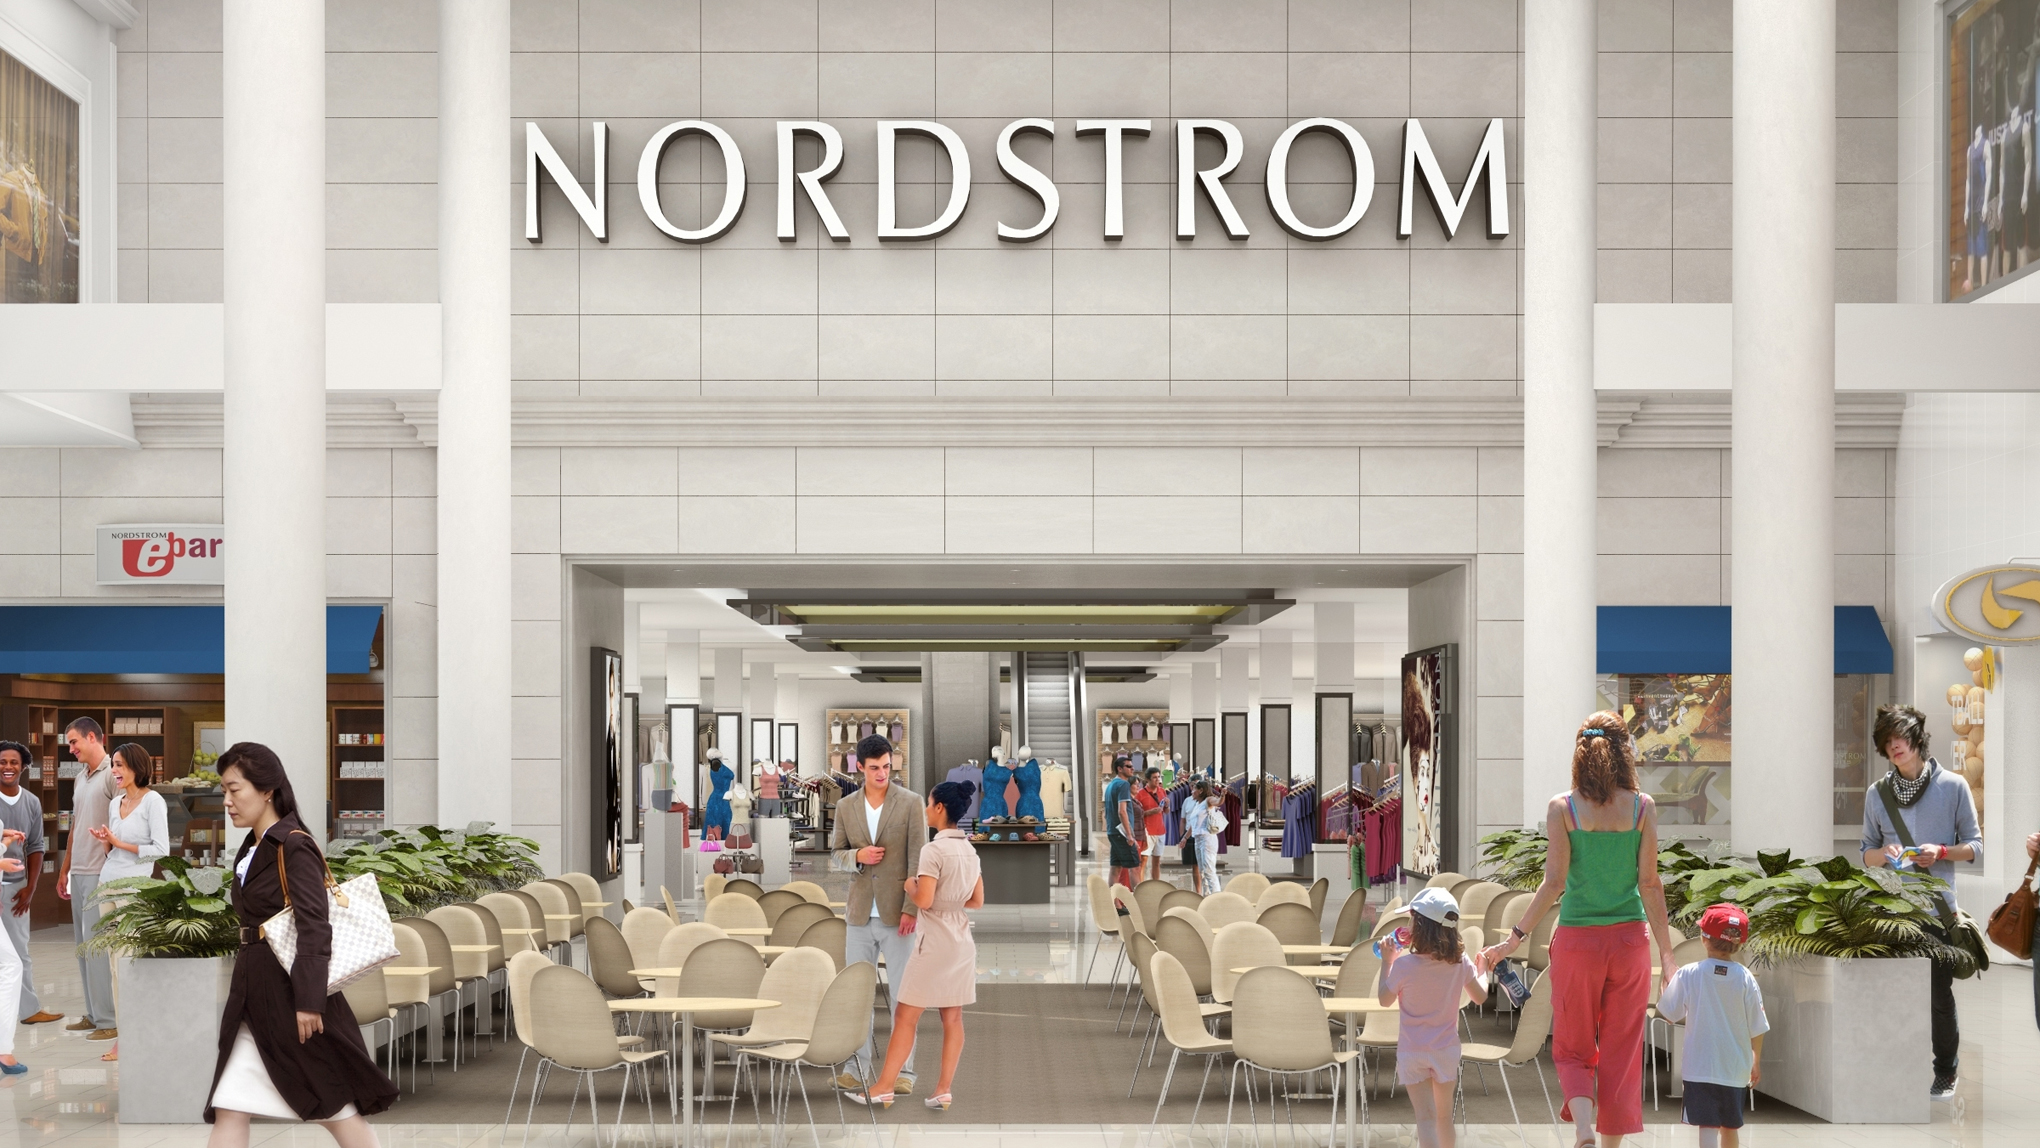 NORDSTROM: New Markdown up to 60% off